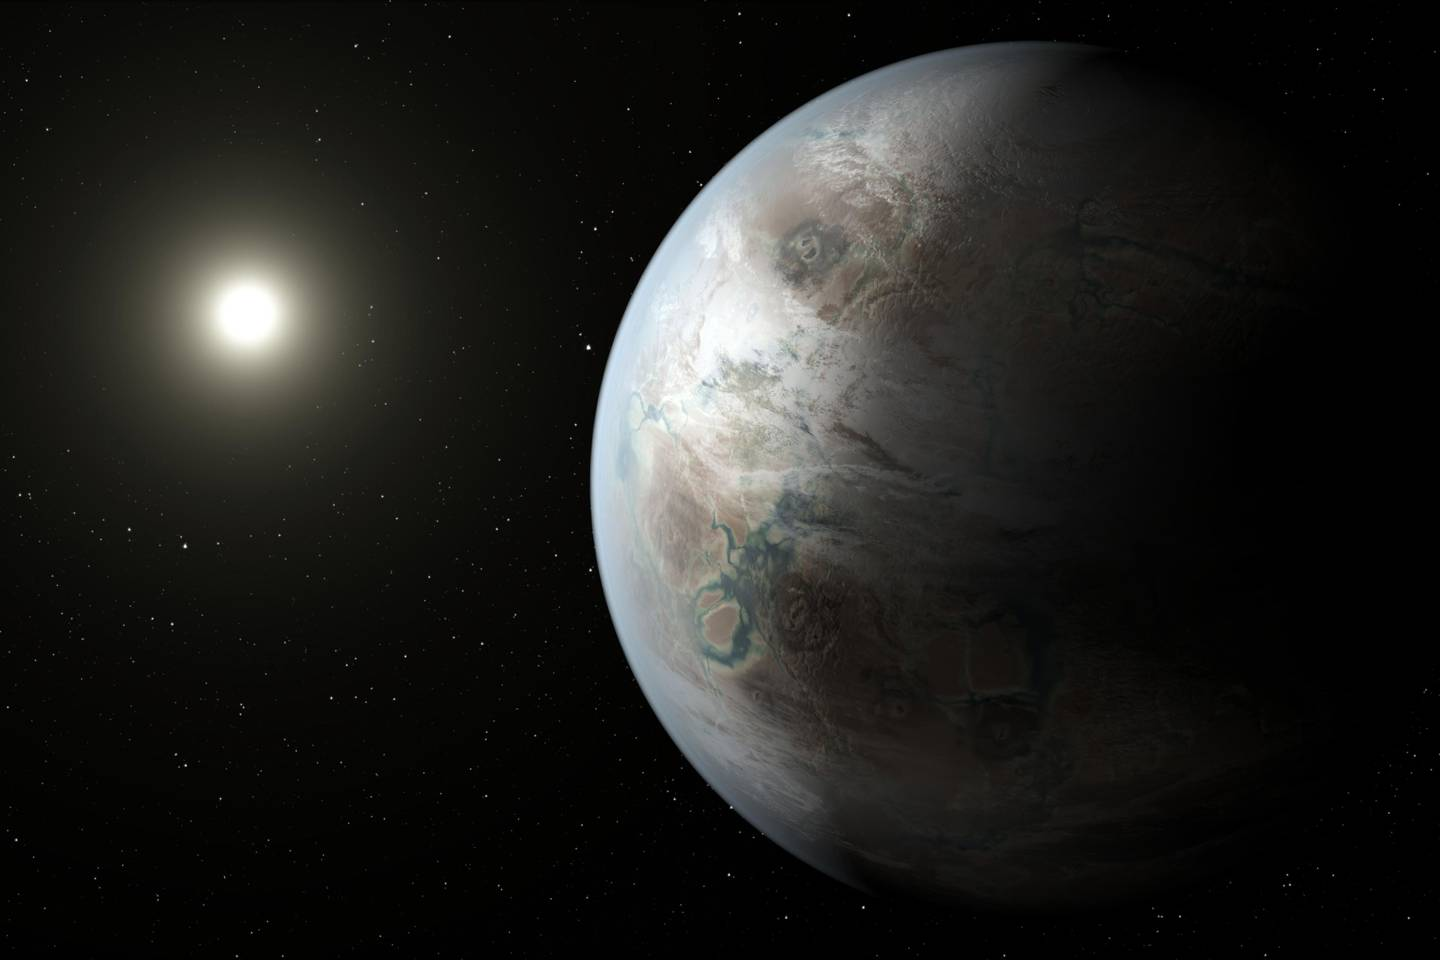 Nasa is revealing a 'discovery beyond our solar system'. Here's how to watch